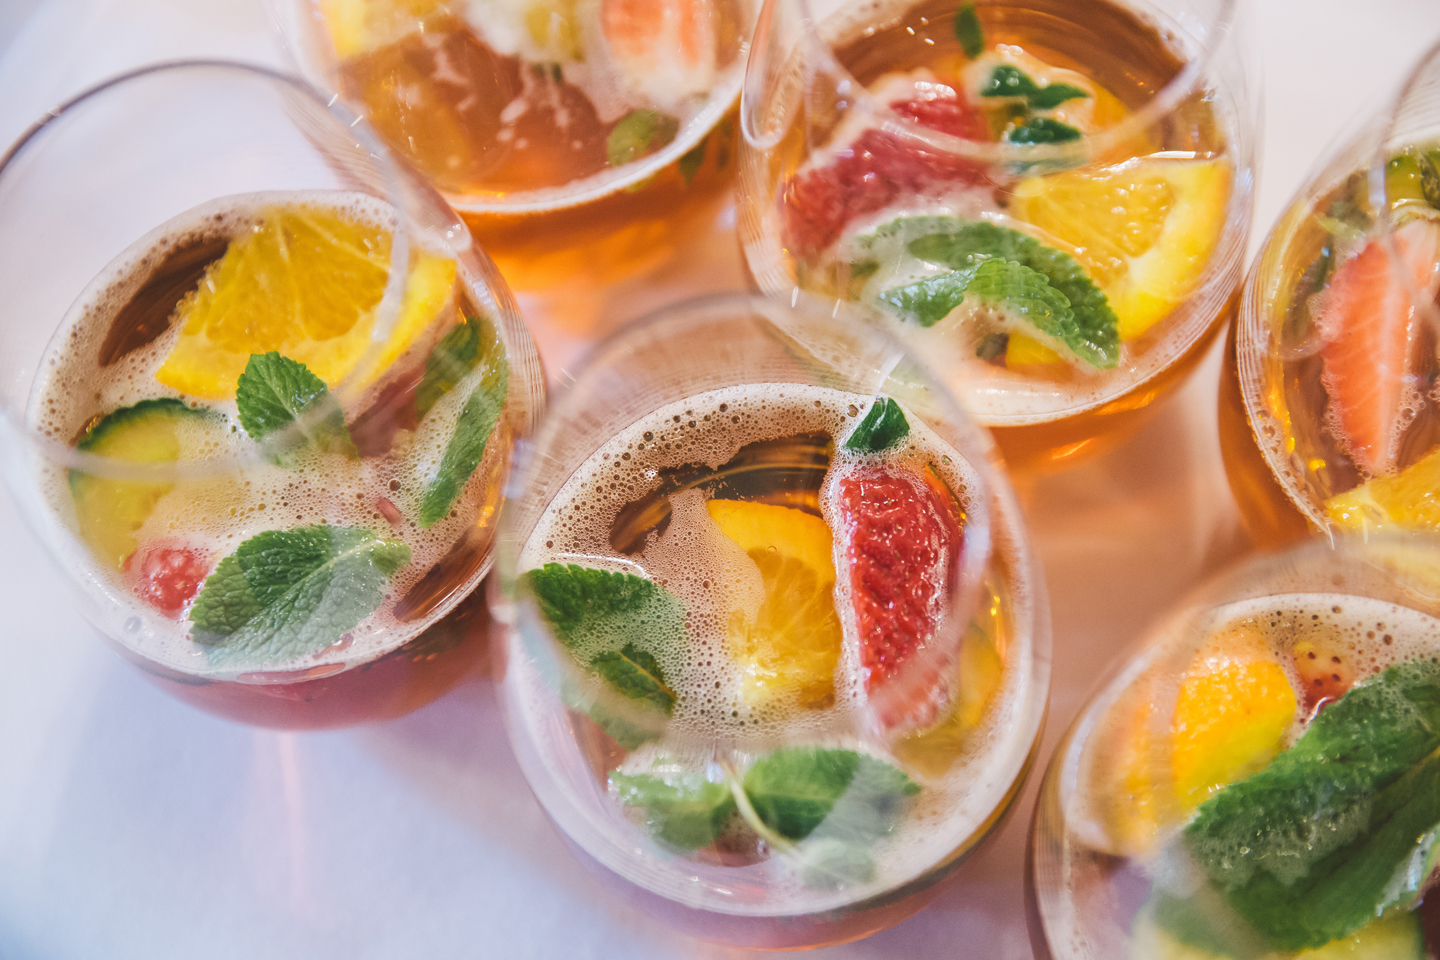 During a summer wedding enjoy a refreshing glass of pimms during your drinks reception at Bassmead Manor Barns